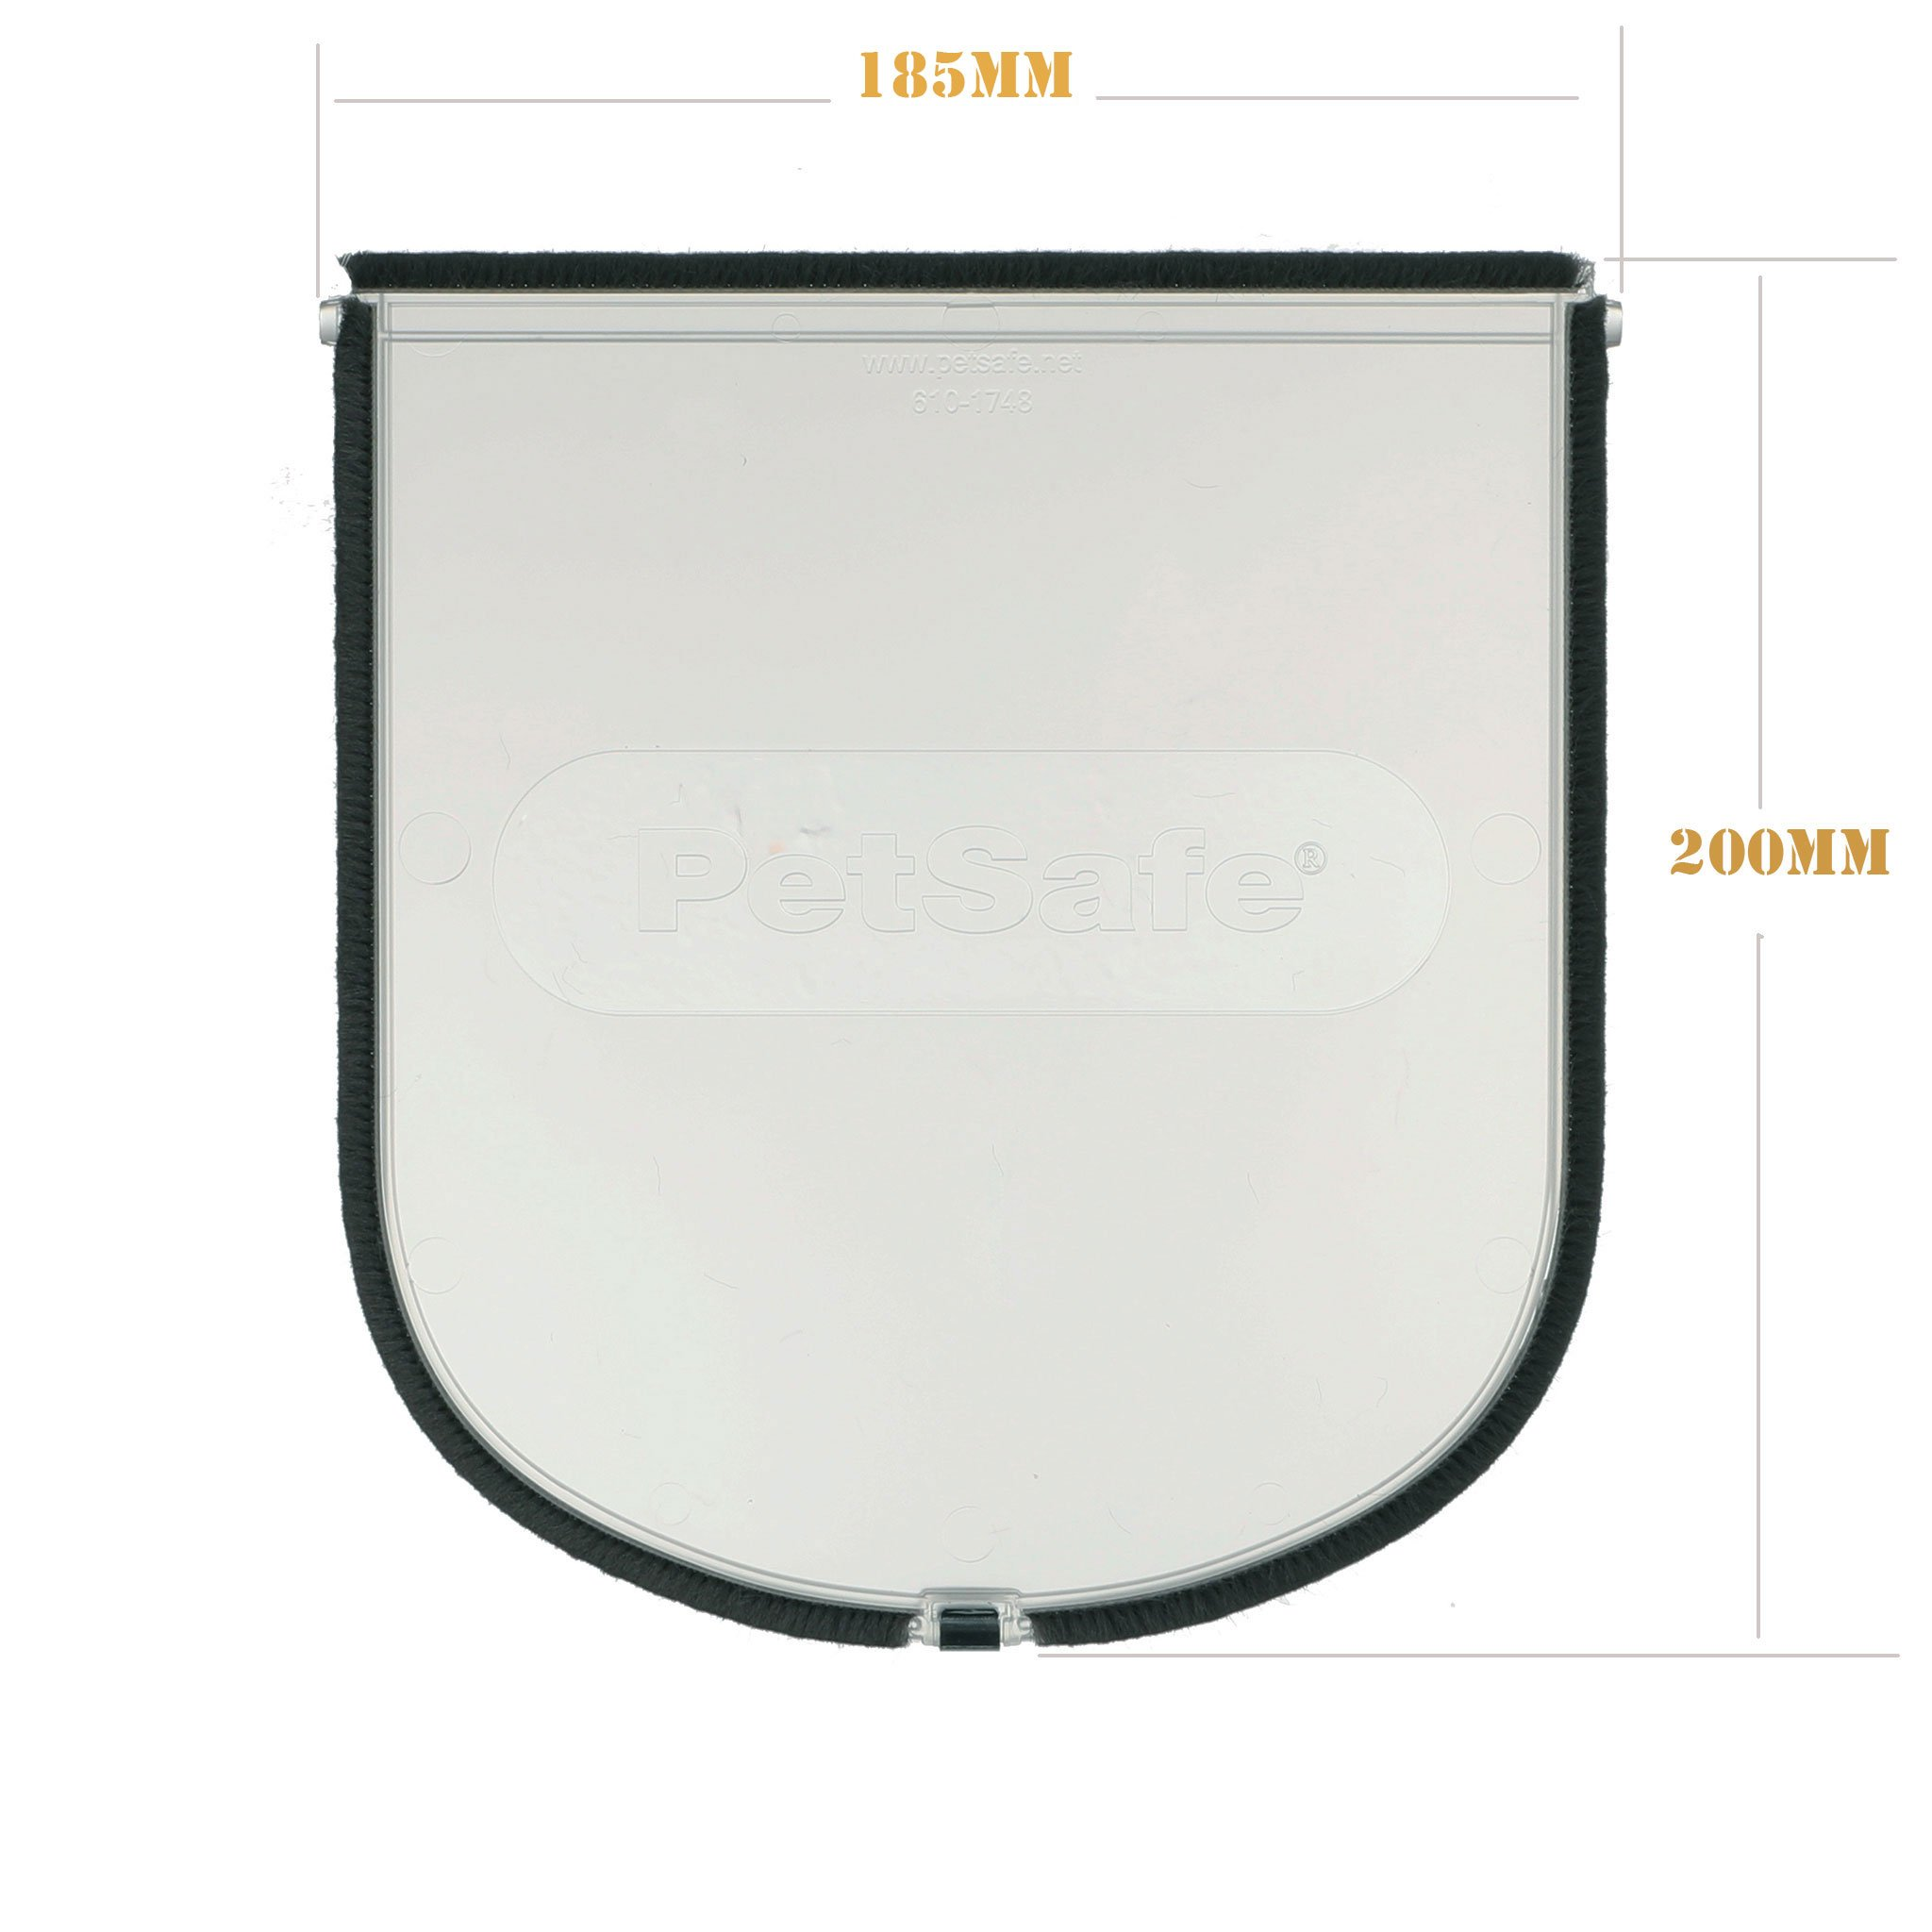 Replaces broken flaps in the 270 280 models